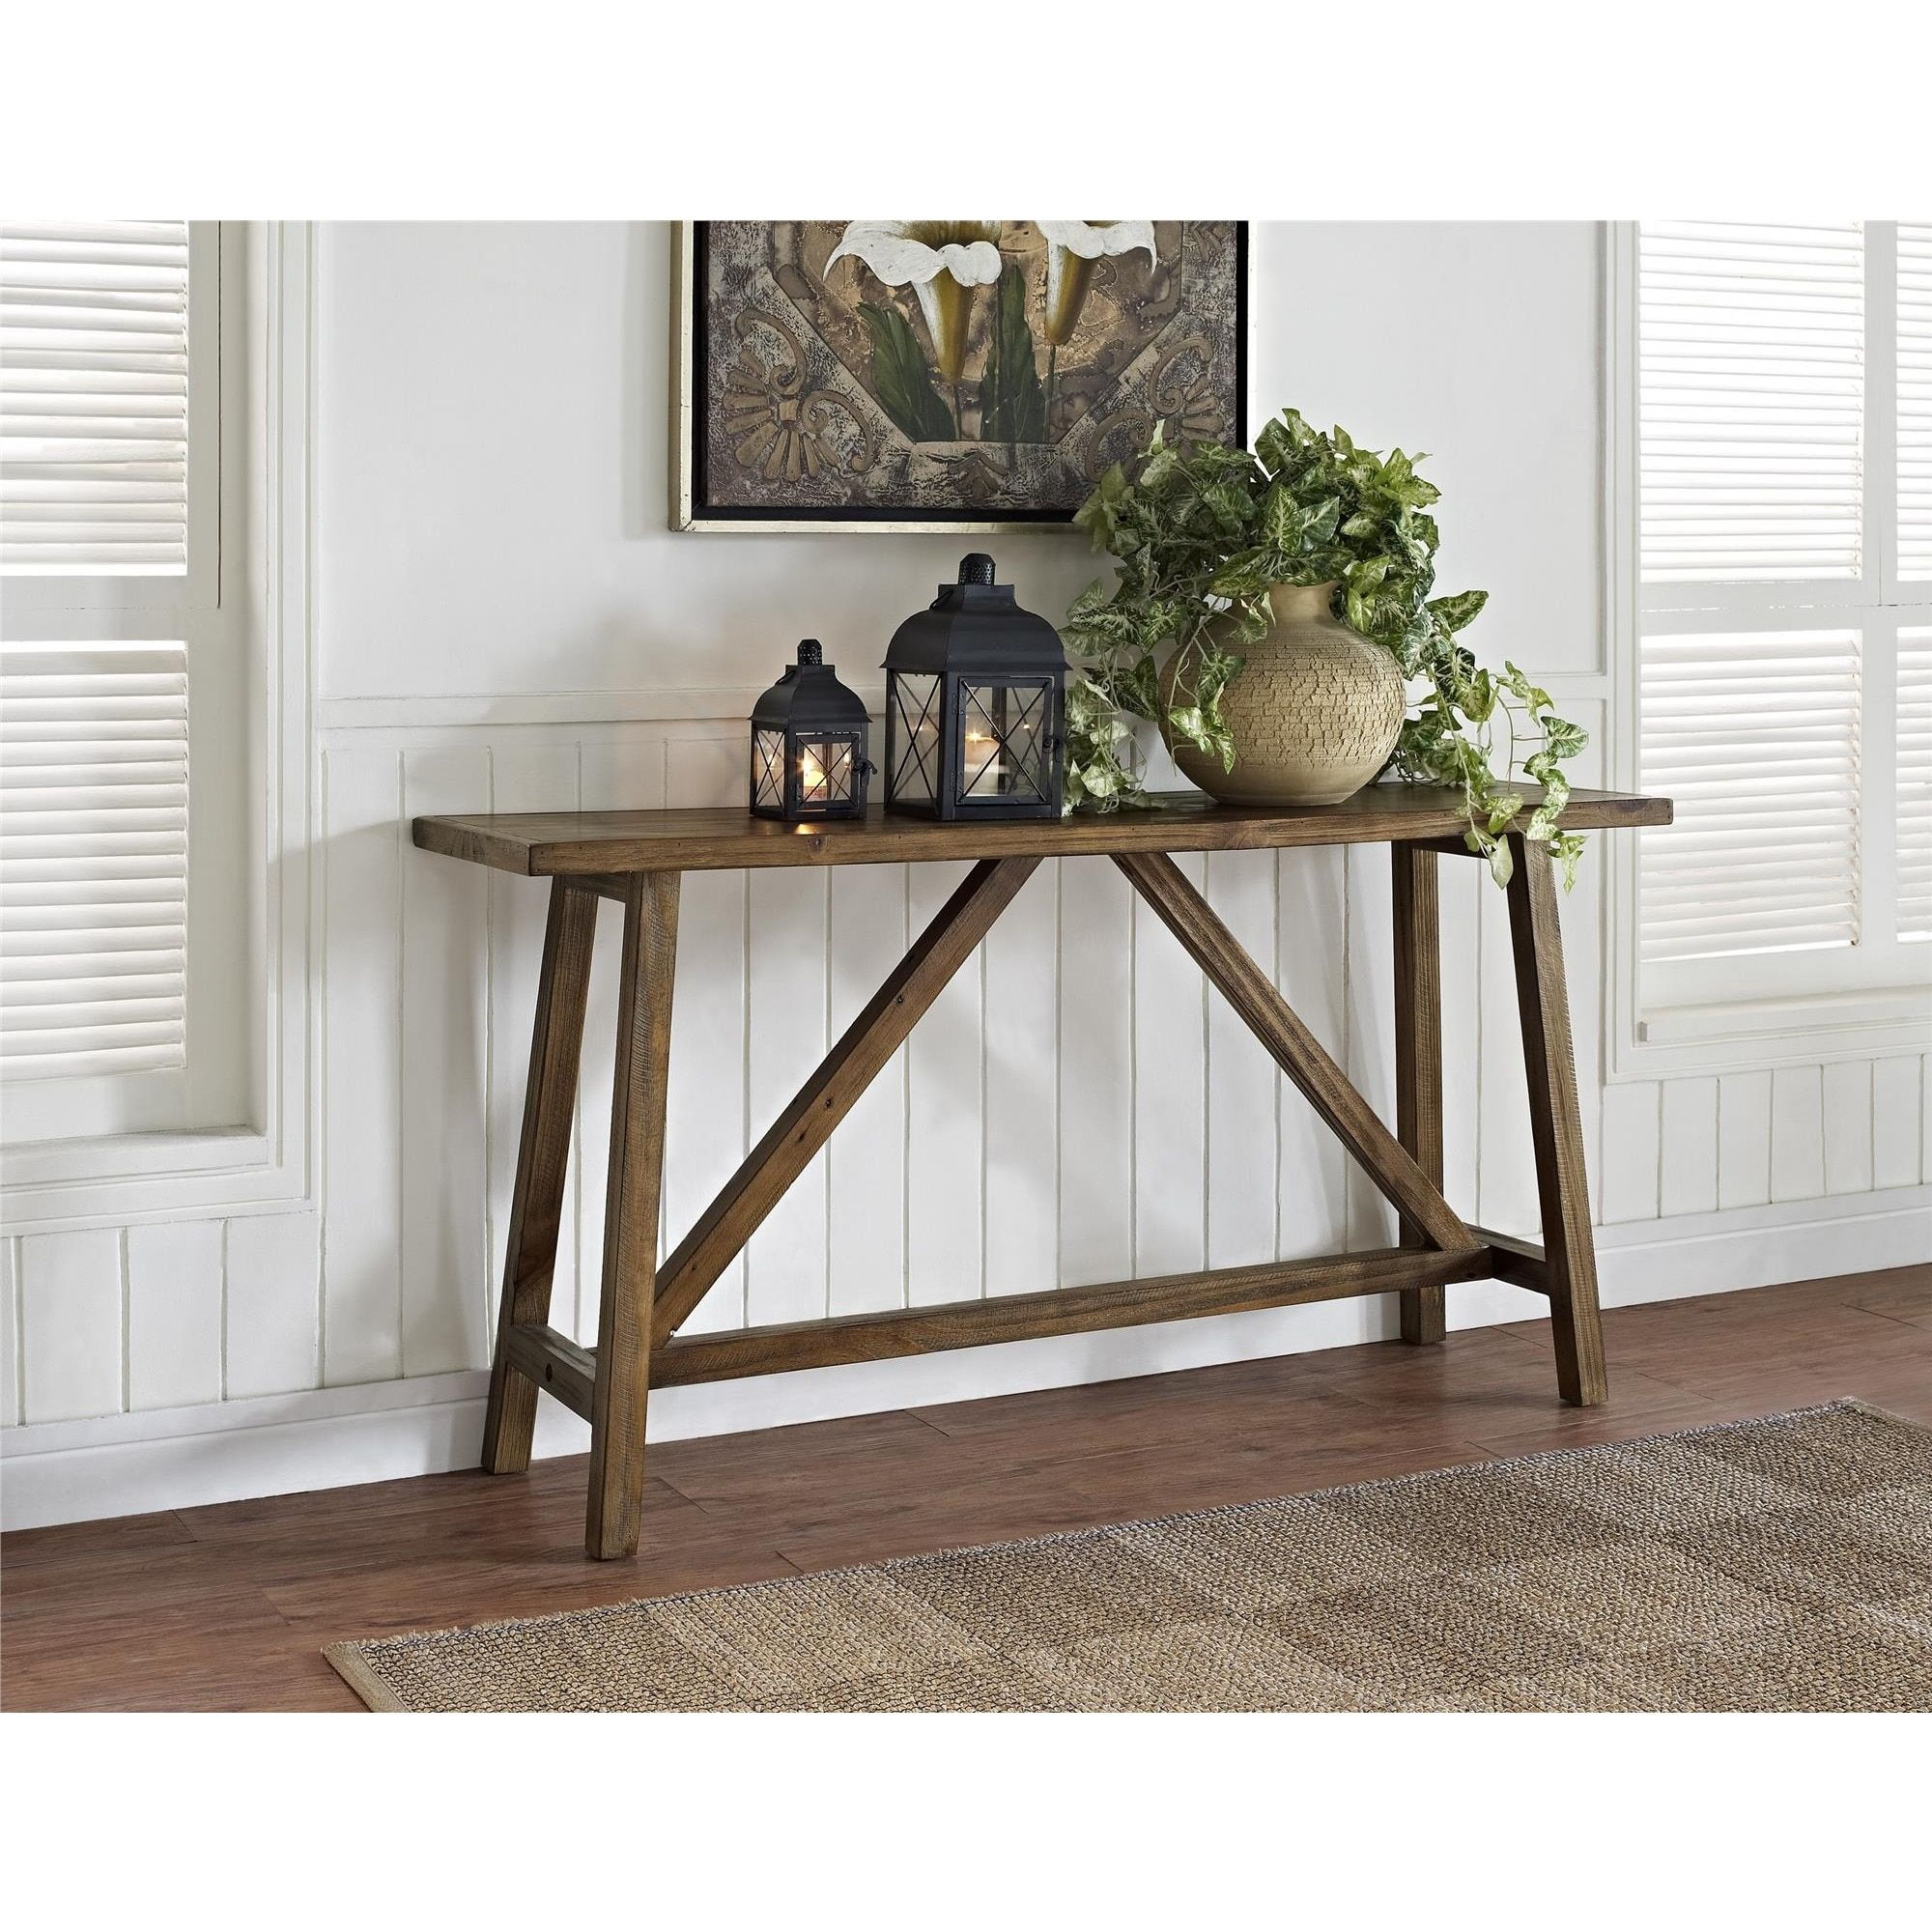 Ameriwood Home Bennington Console Table by Ameriwood Home